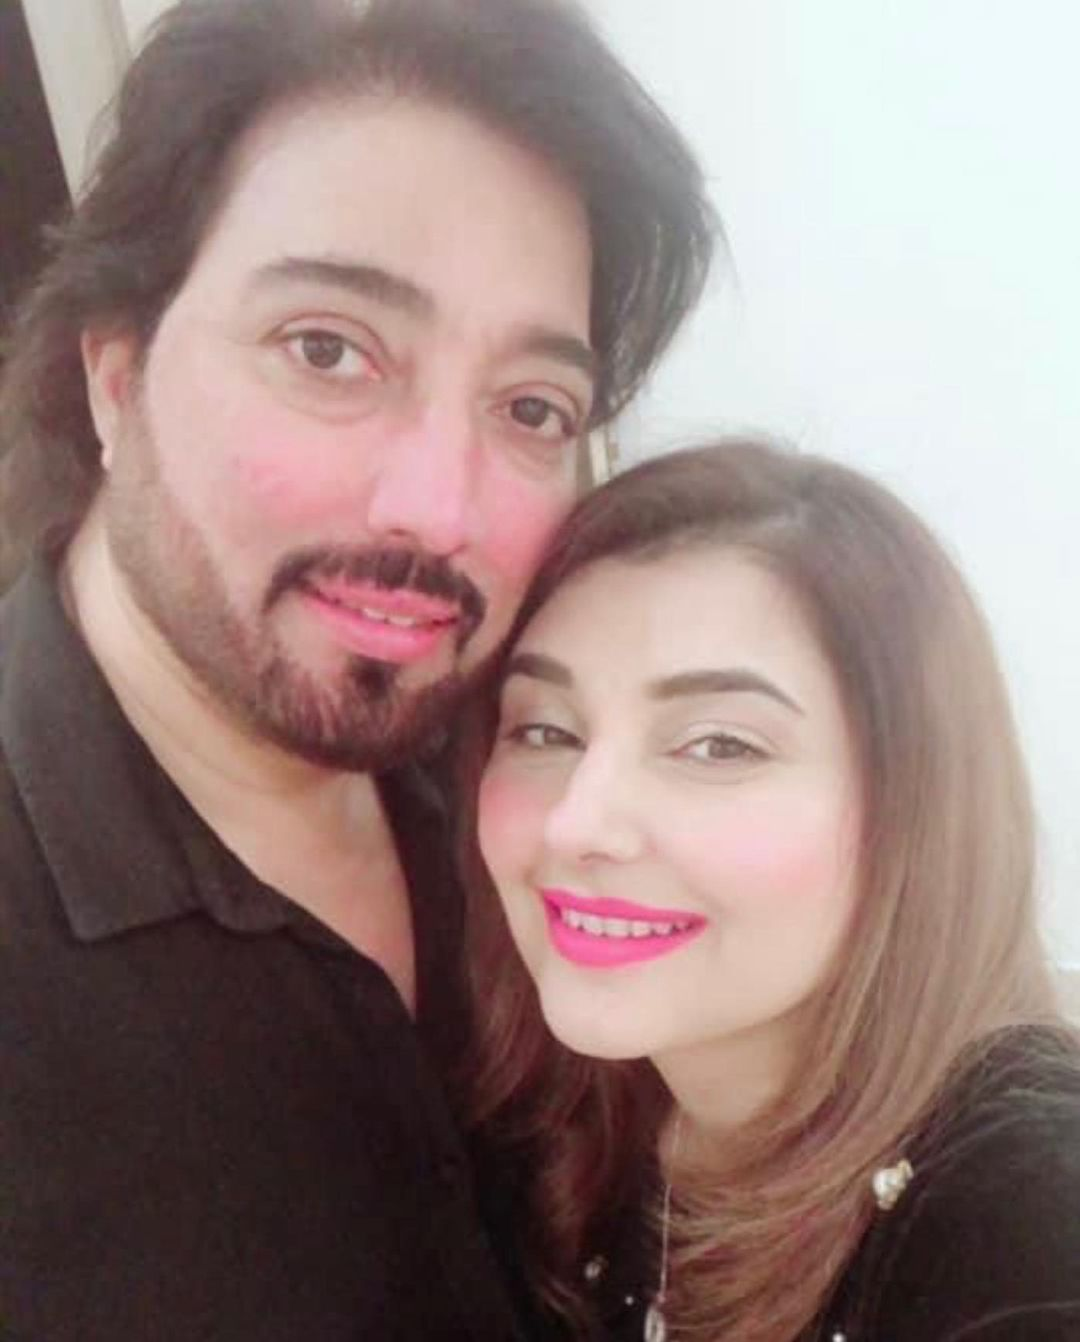 Javeria and Saud Latest Pictures from Recent Vacations